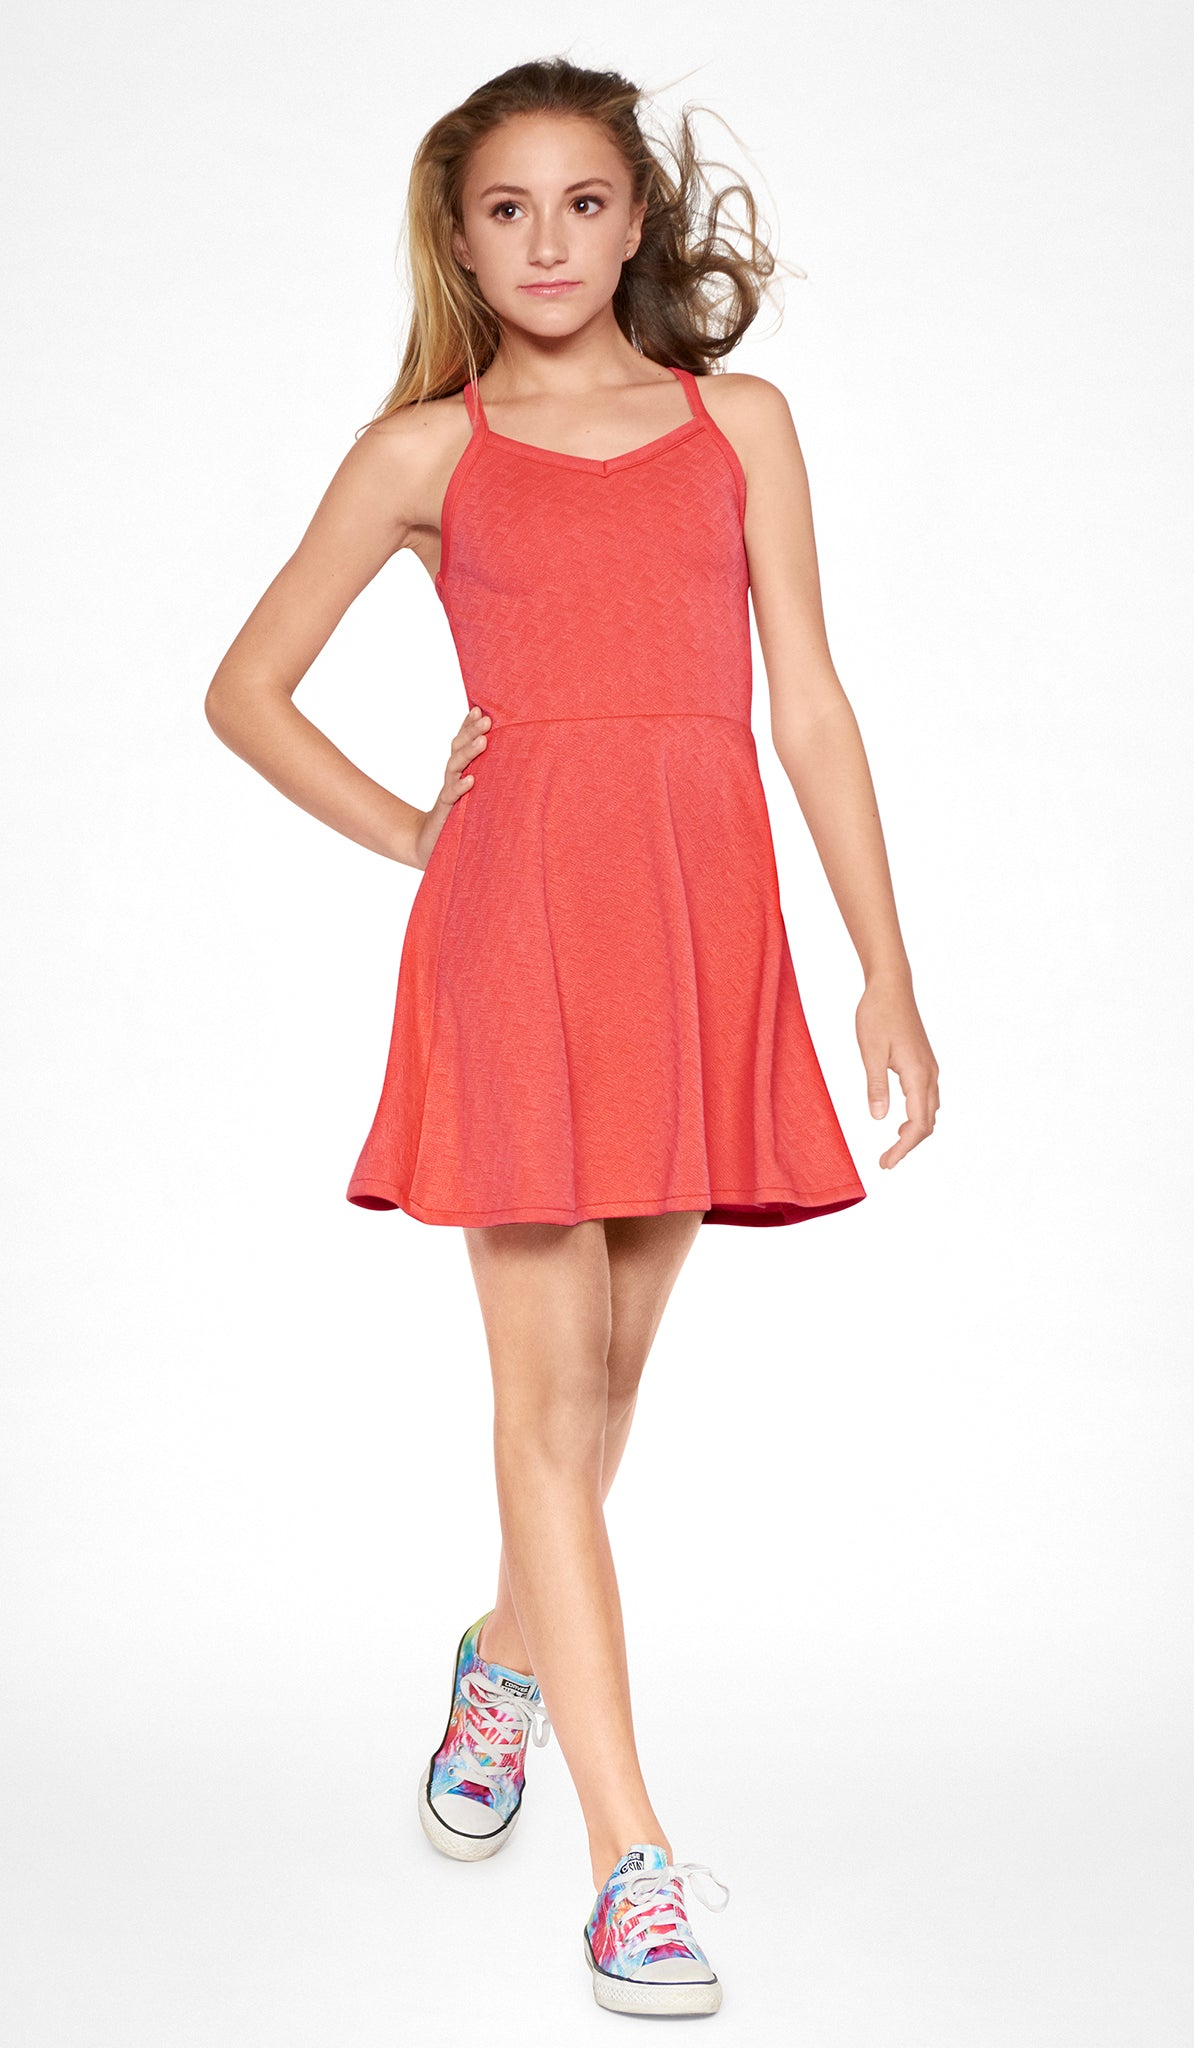 Poppy textured stretch knit ballet skater dress with cross straps at back Sally Miller Nolita Dress Poppy